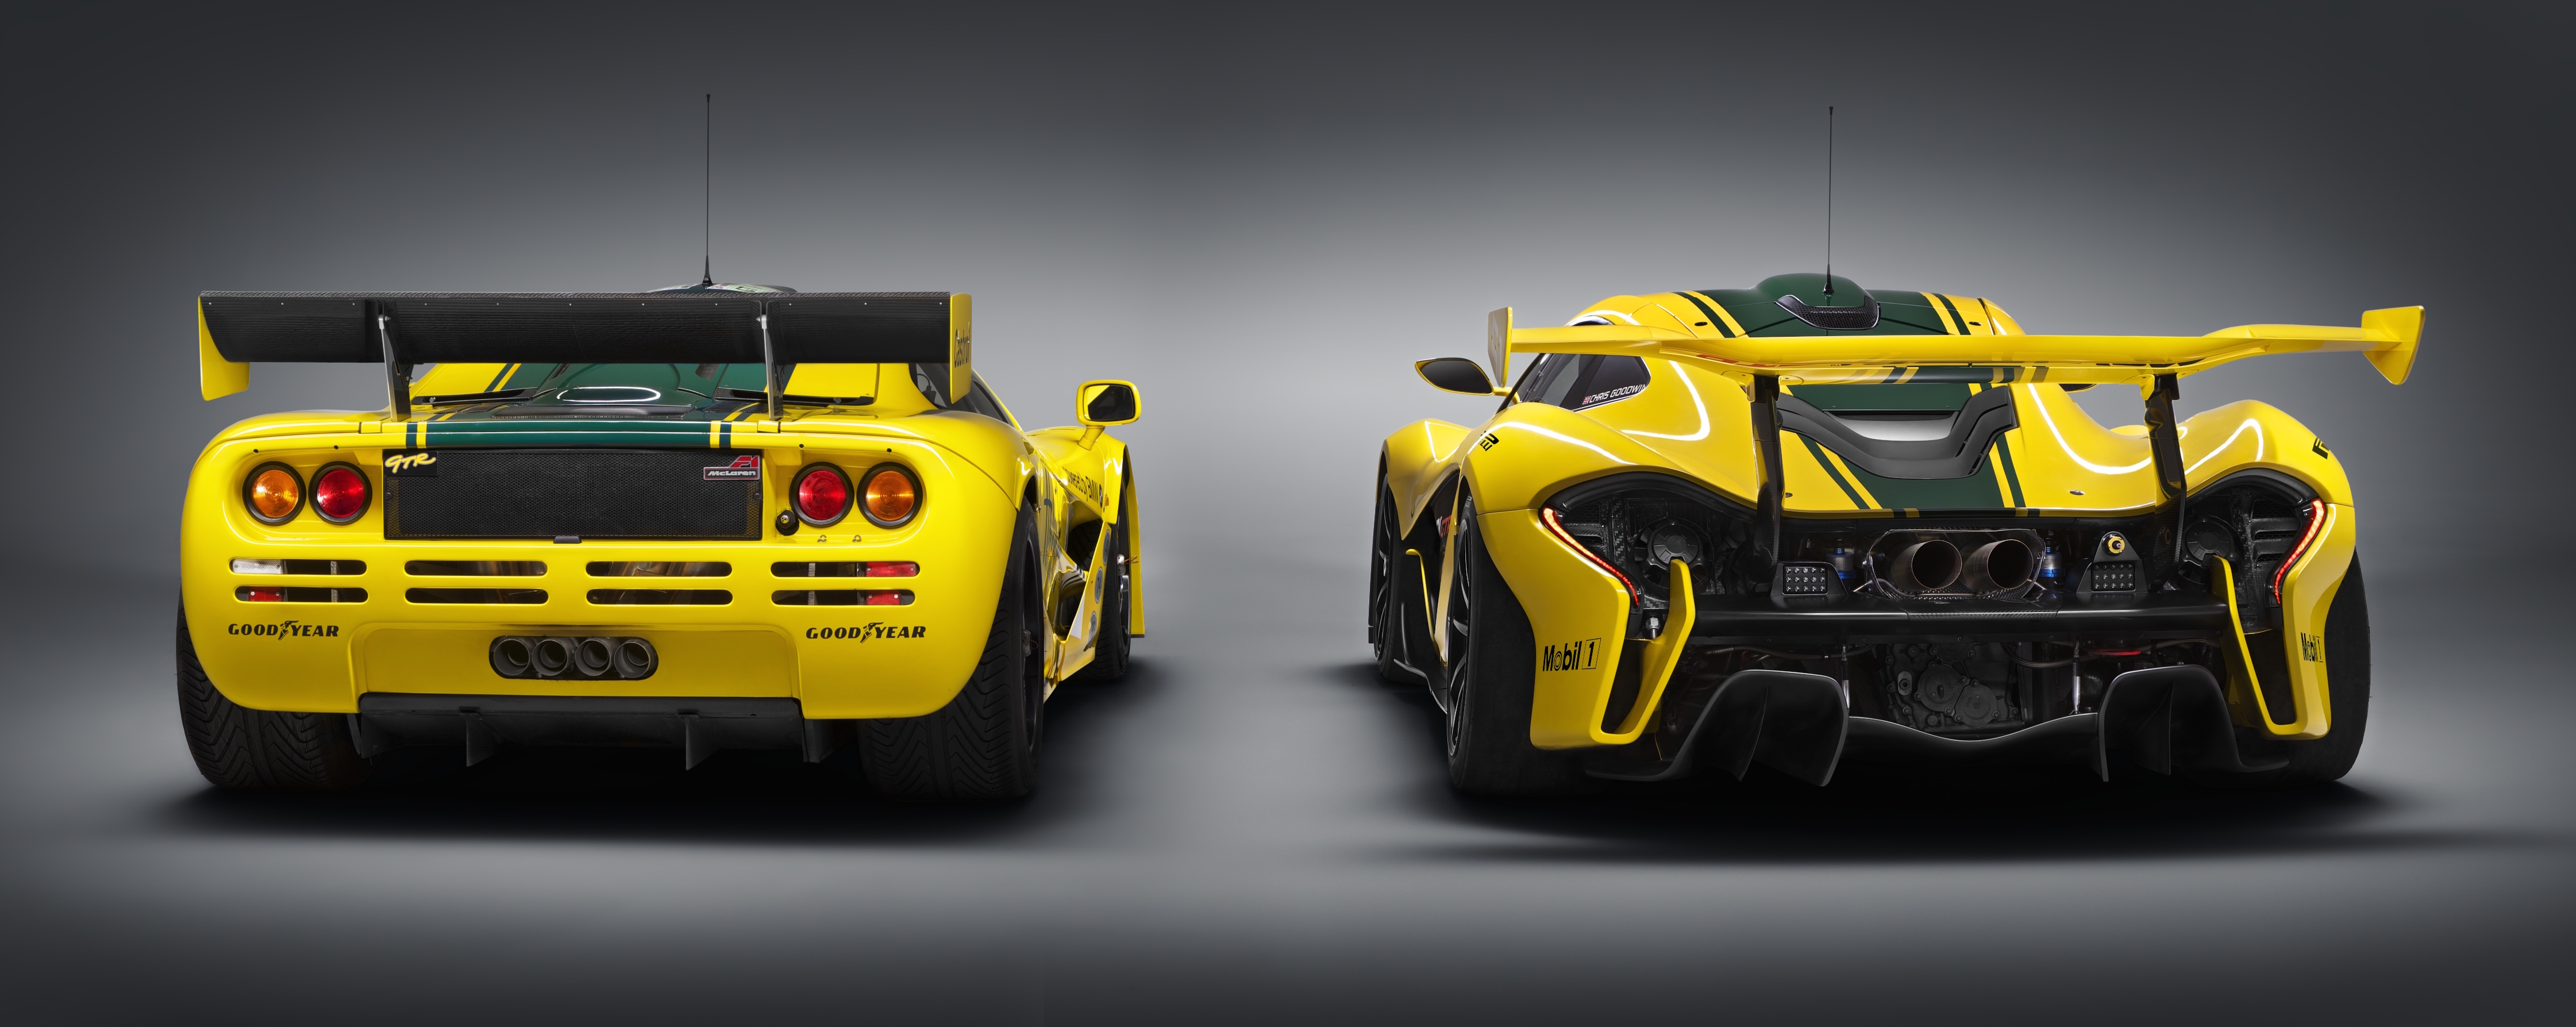 mclaren p1 gtr unveiled with 1 000 ps hybrid power image. Black Bedroom Furniture Sets. Home Design Ideas